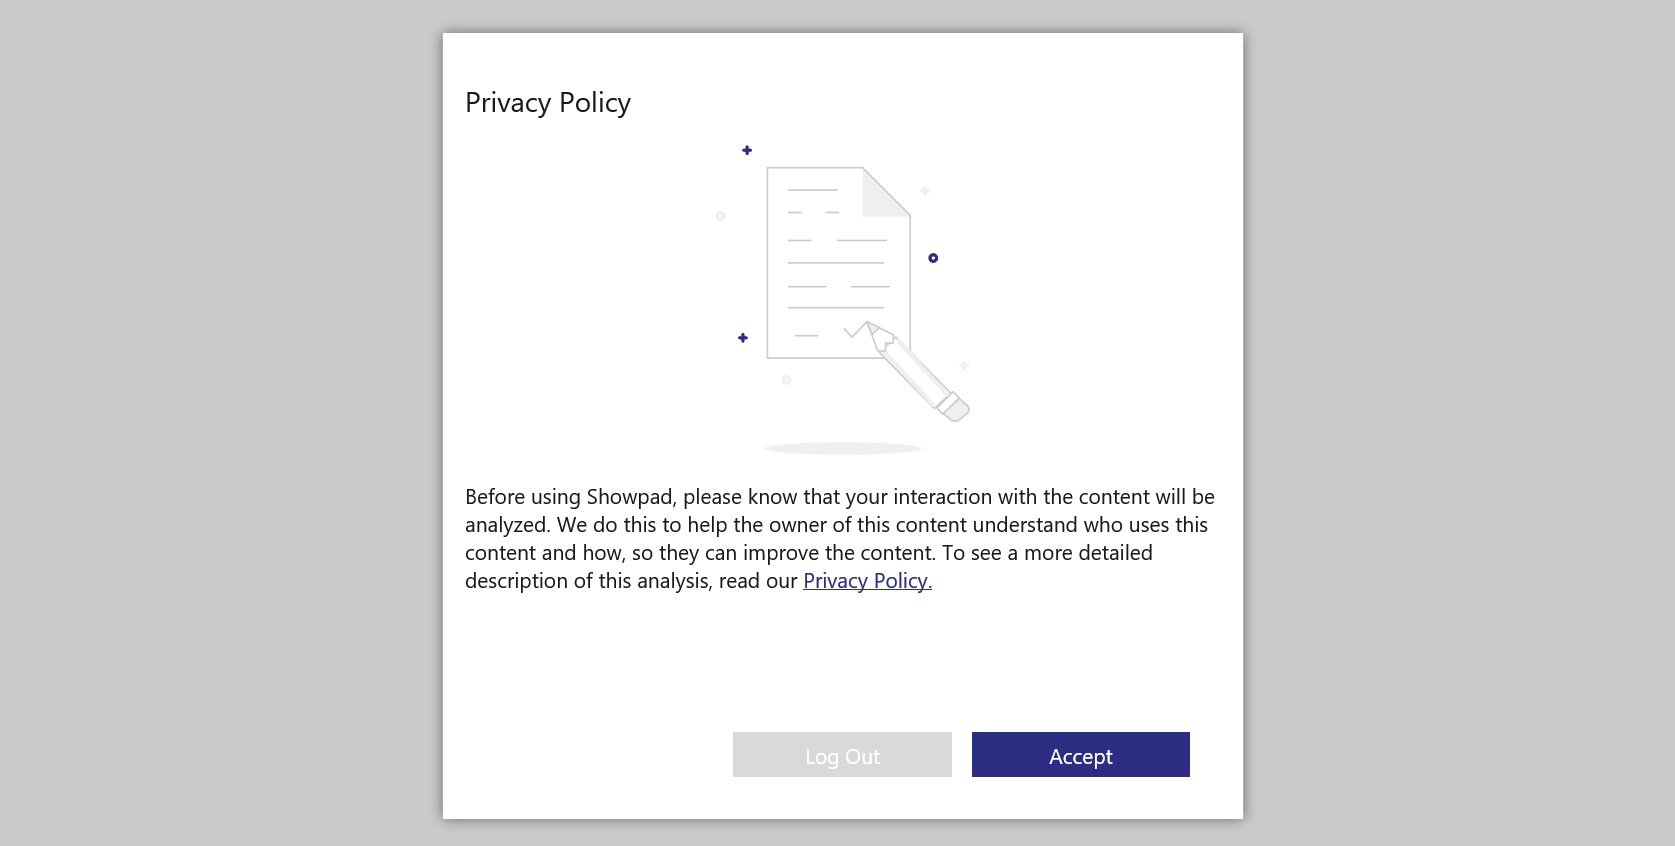 privacy_policy_windows.png